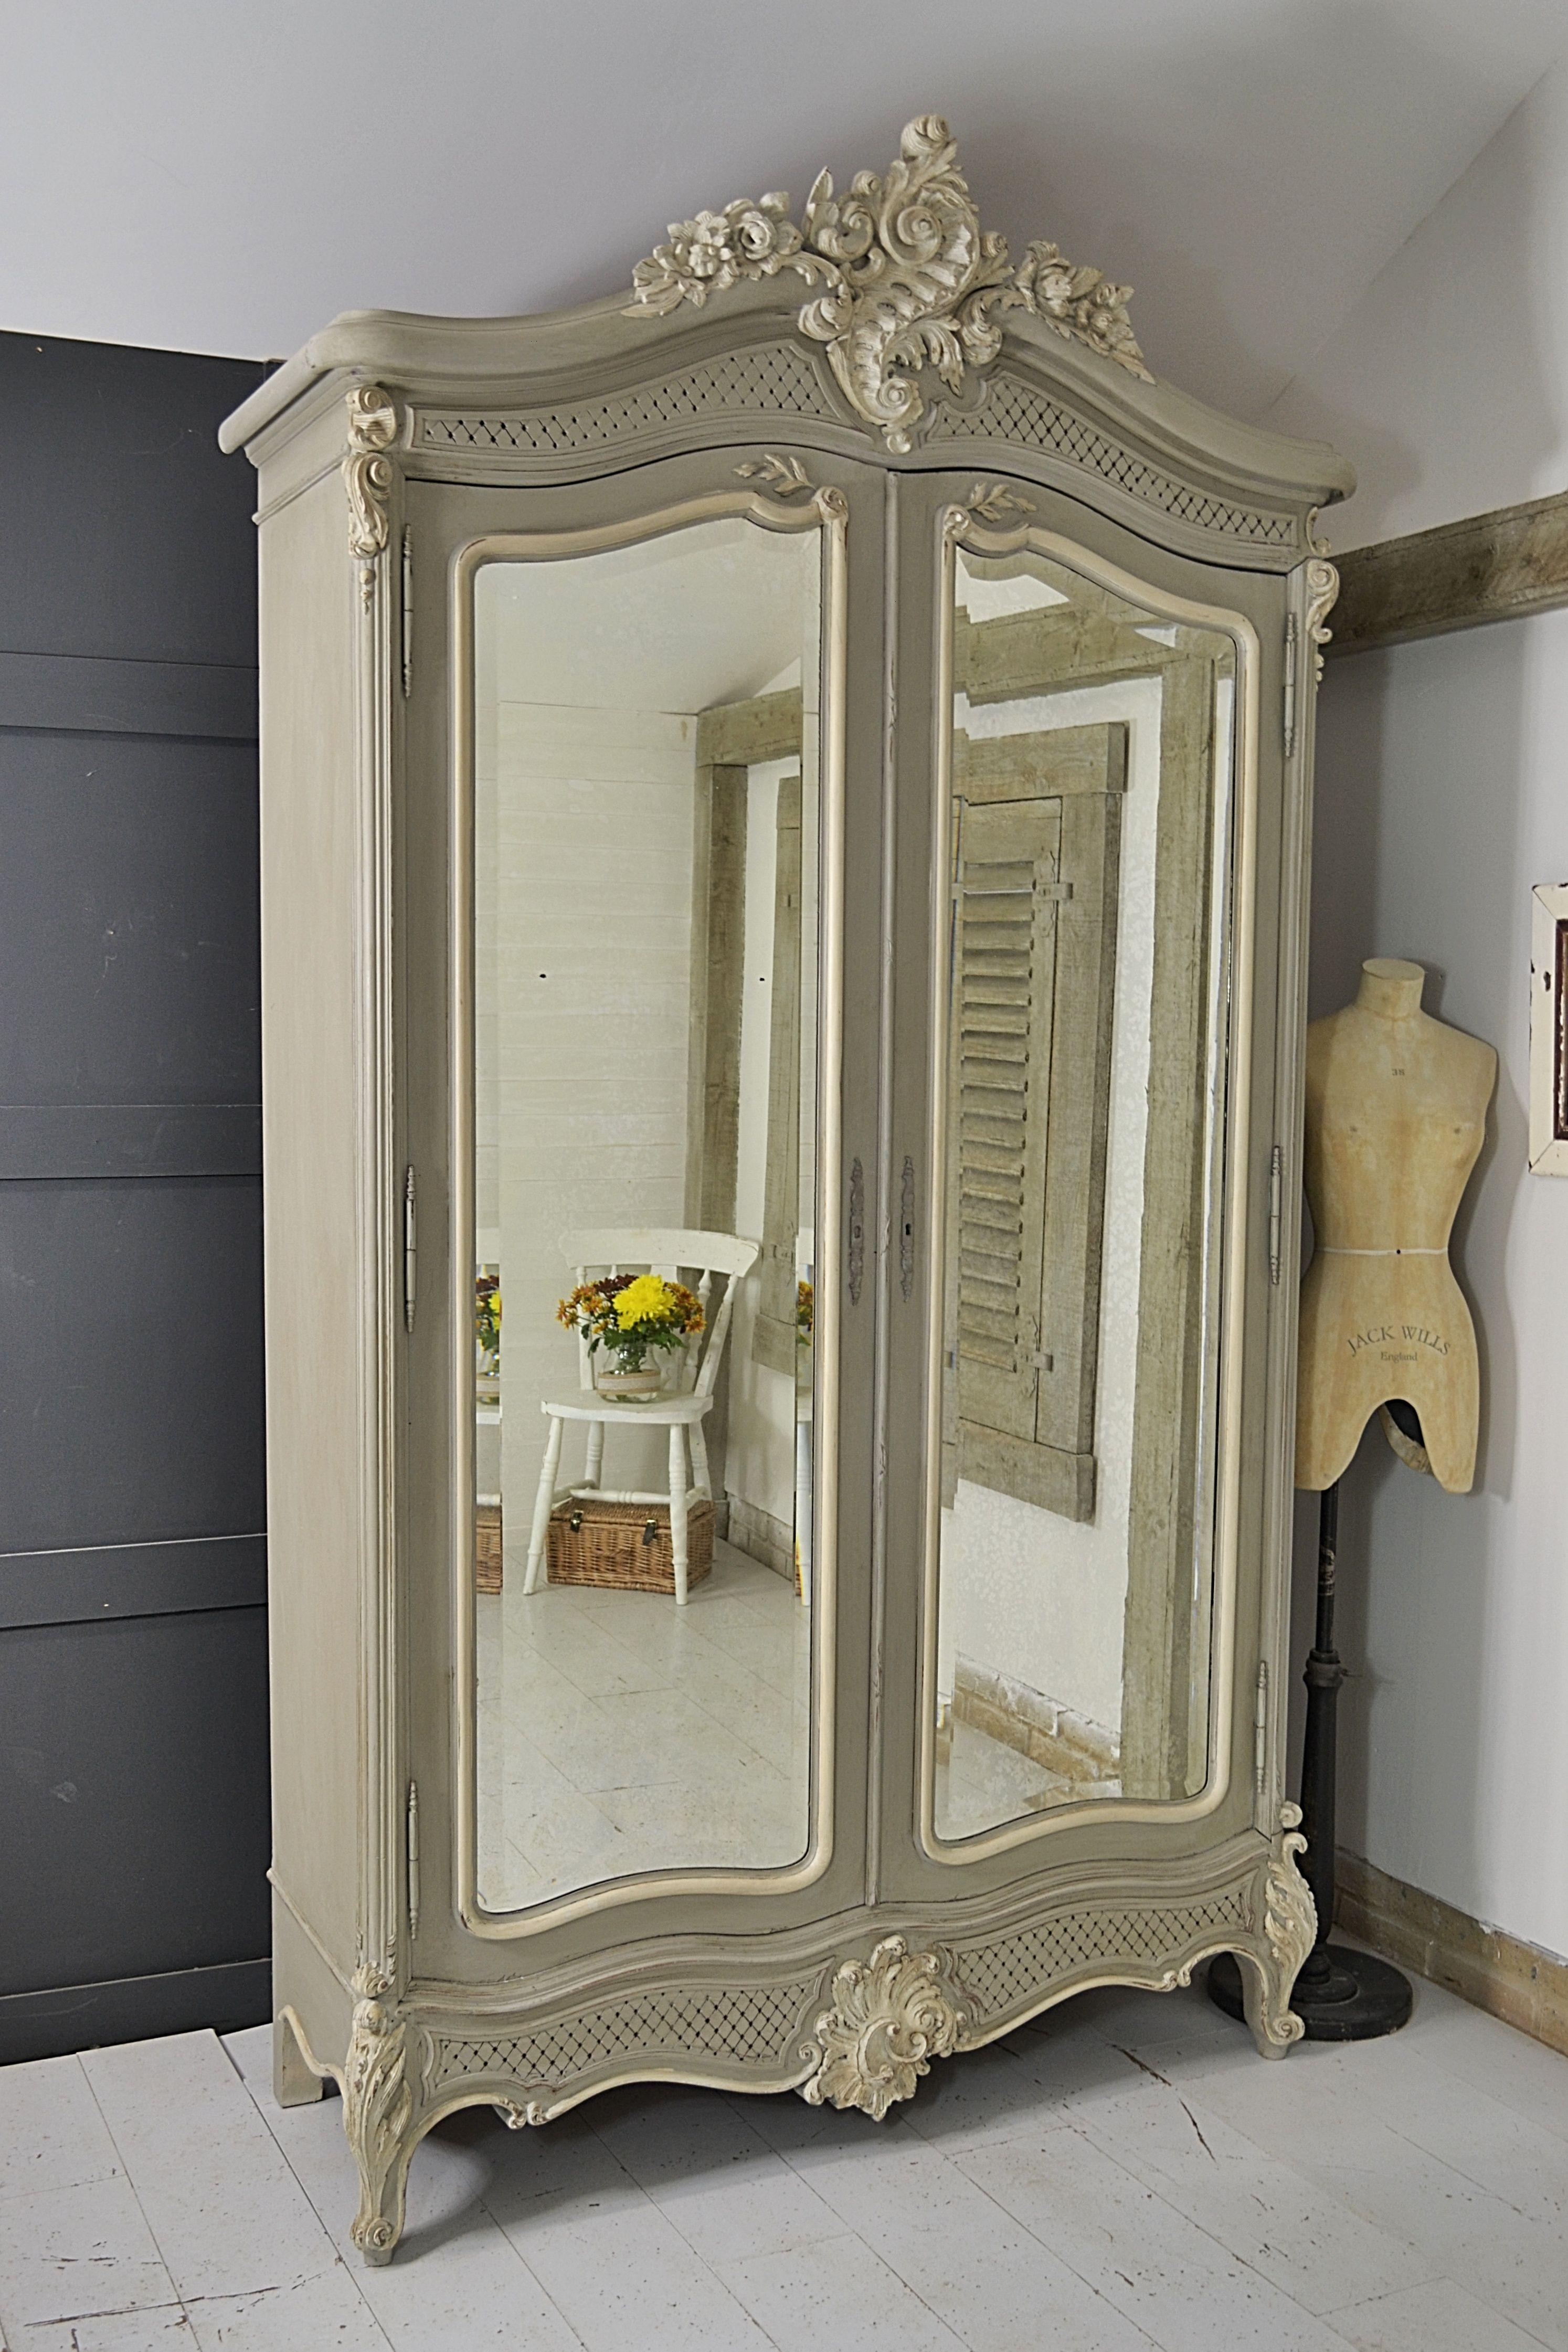 This Beautiful Shabby Chic French Armoire Would Make A Grand Statement In  Any Bedroom! We